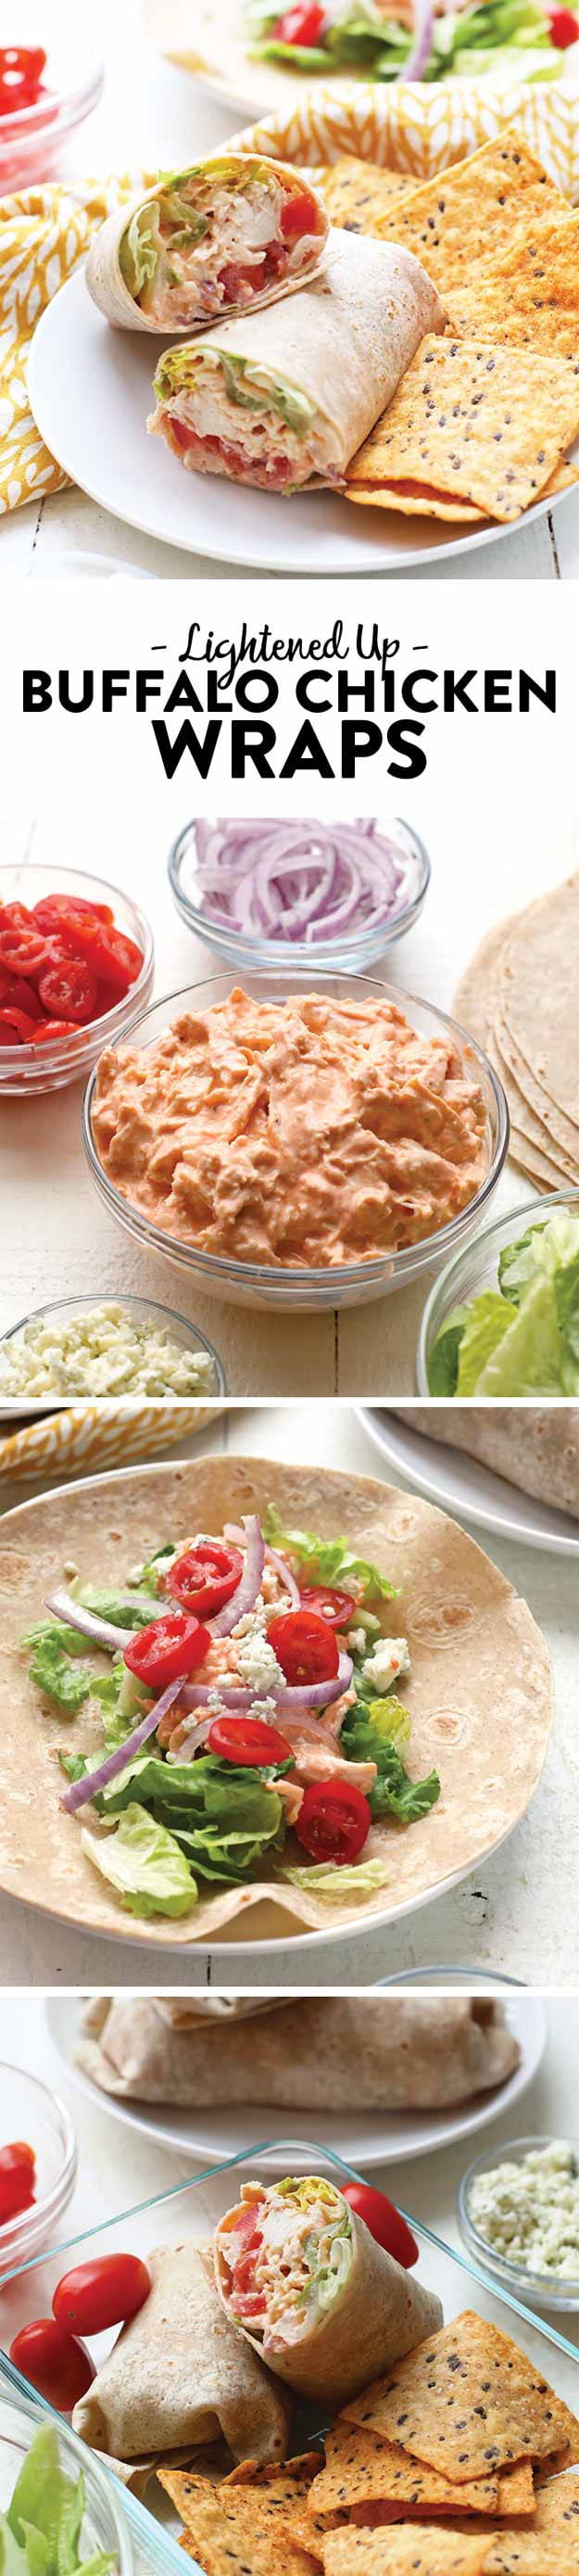 Healthy Low Calorie Lunches To Take To Work  35 More Healthy Lunches For Work The Goddess